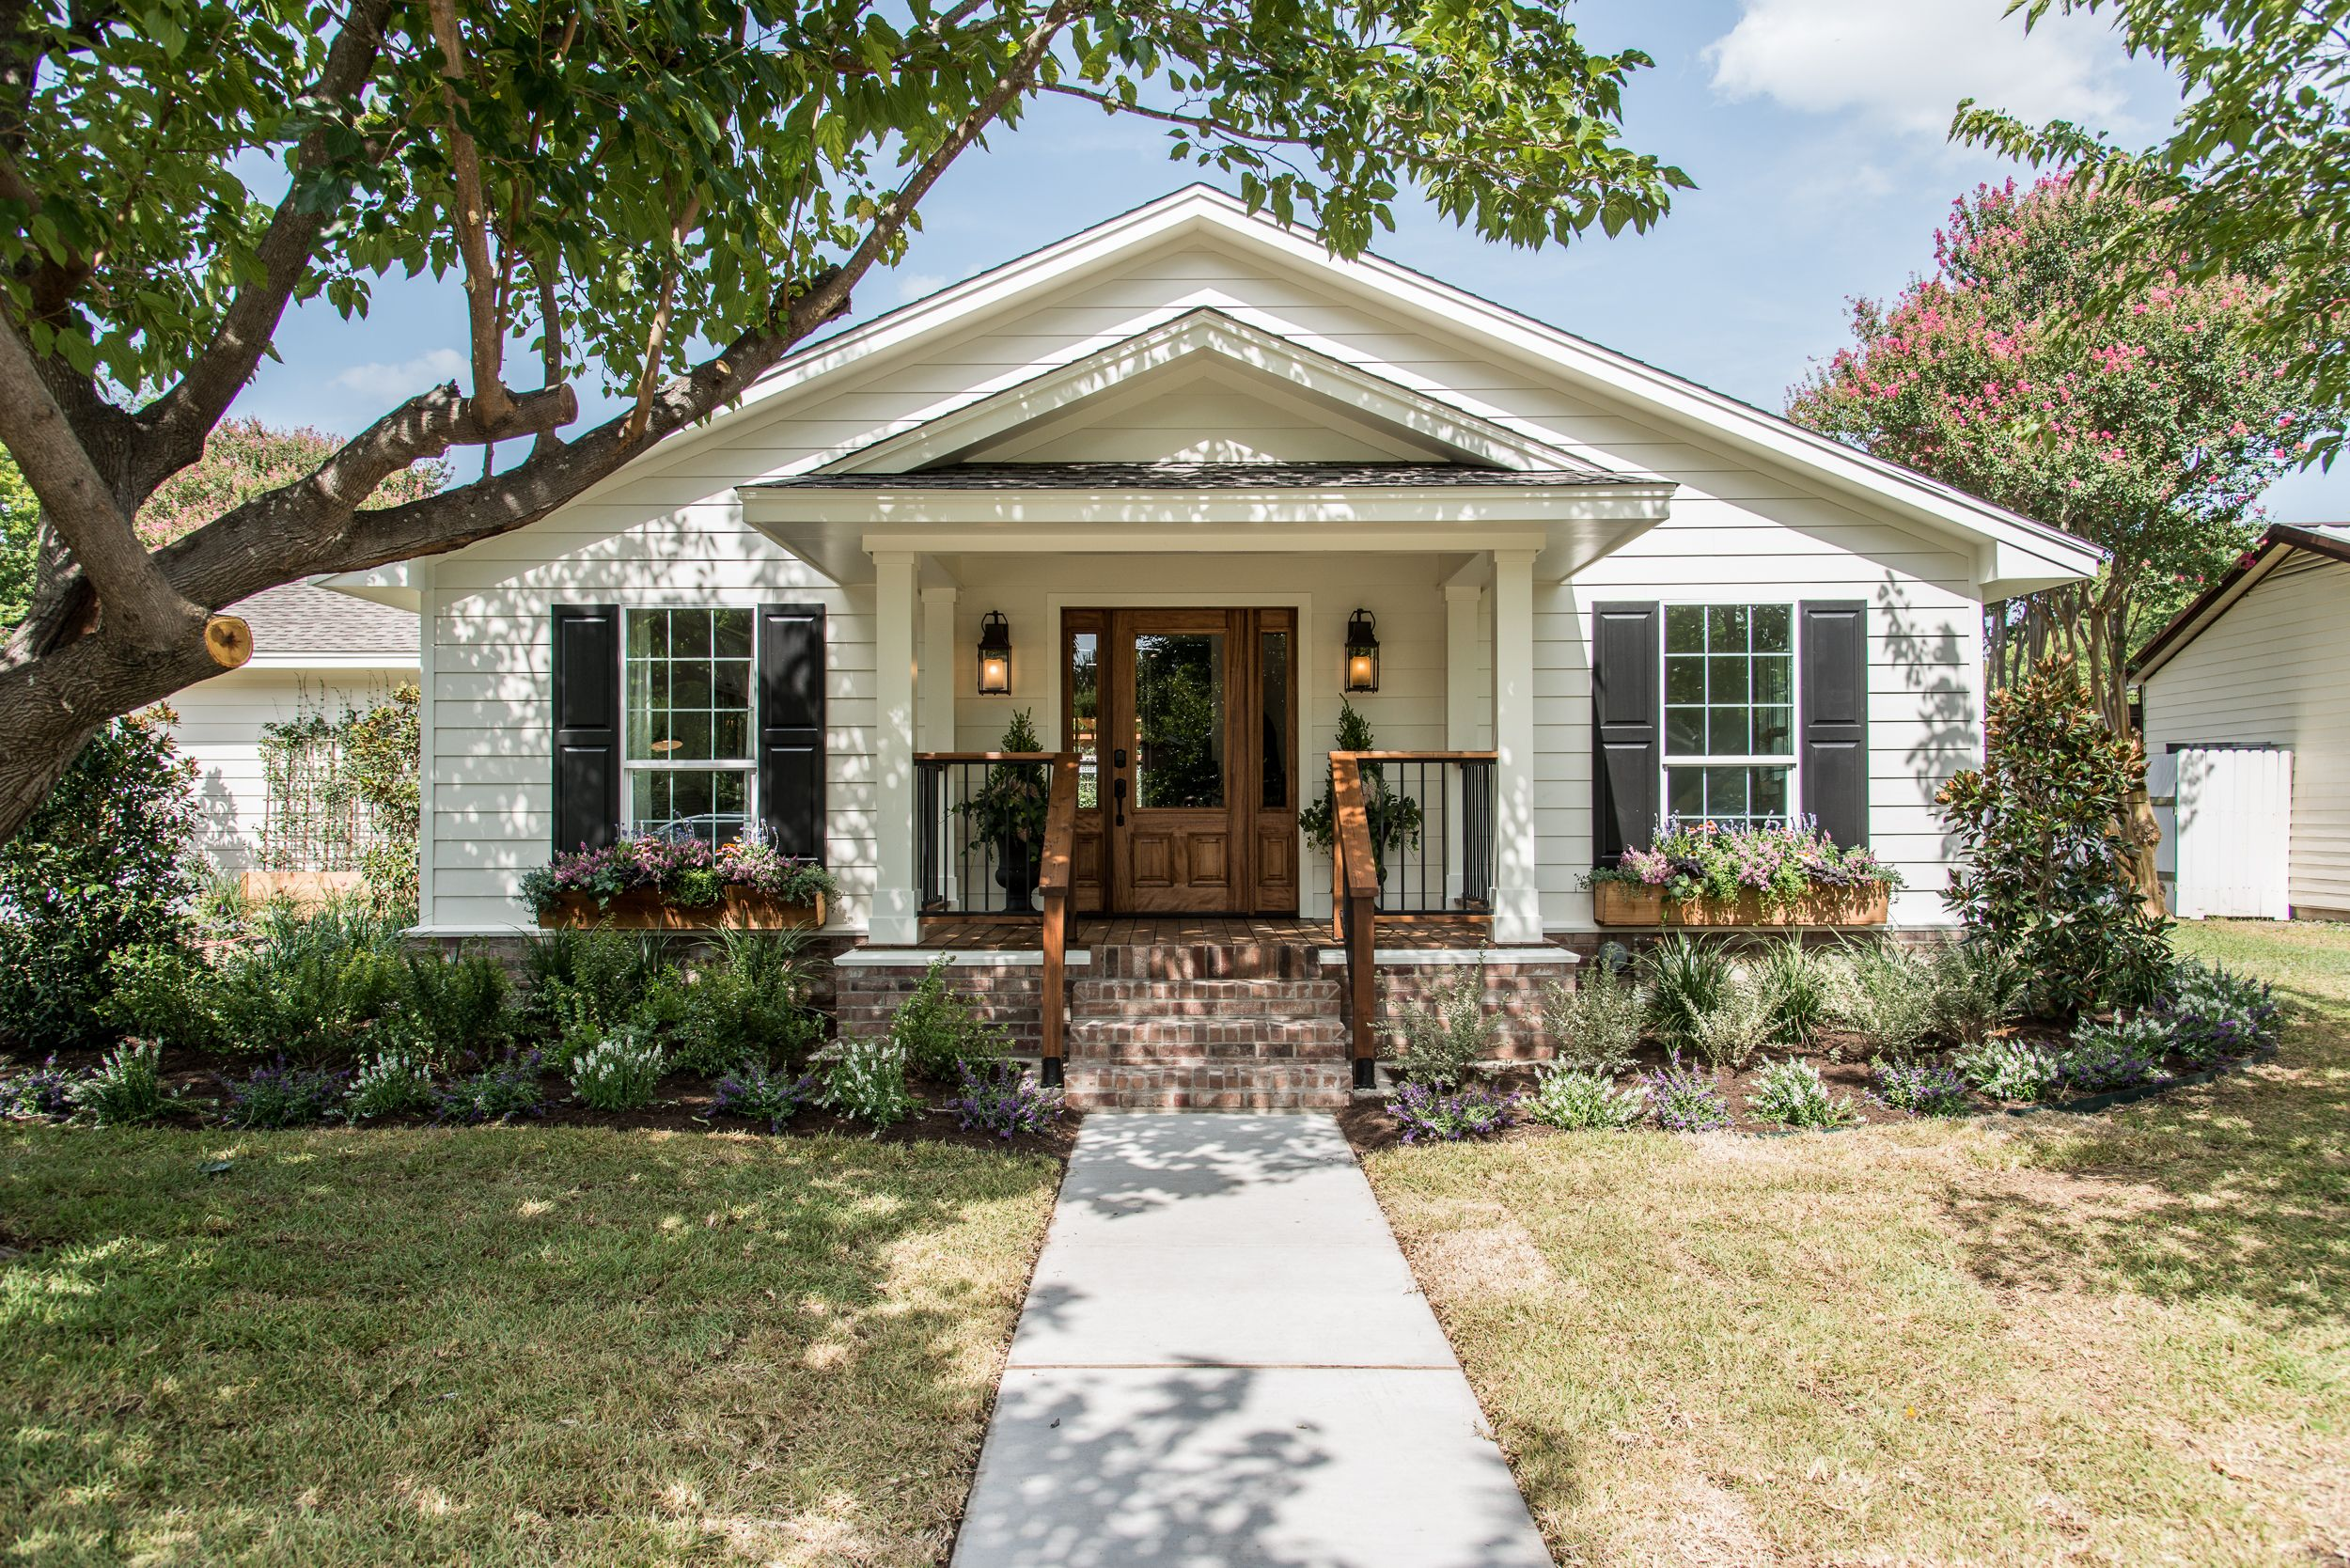 Season 4 Fixer Upper Episode 5 Chip Joanna Gaines The Graham House Waco Tx